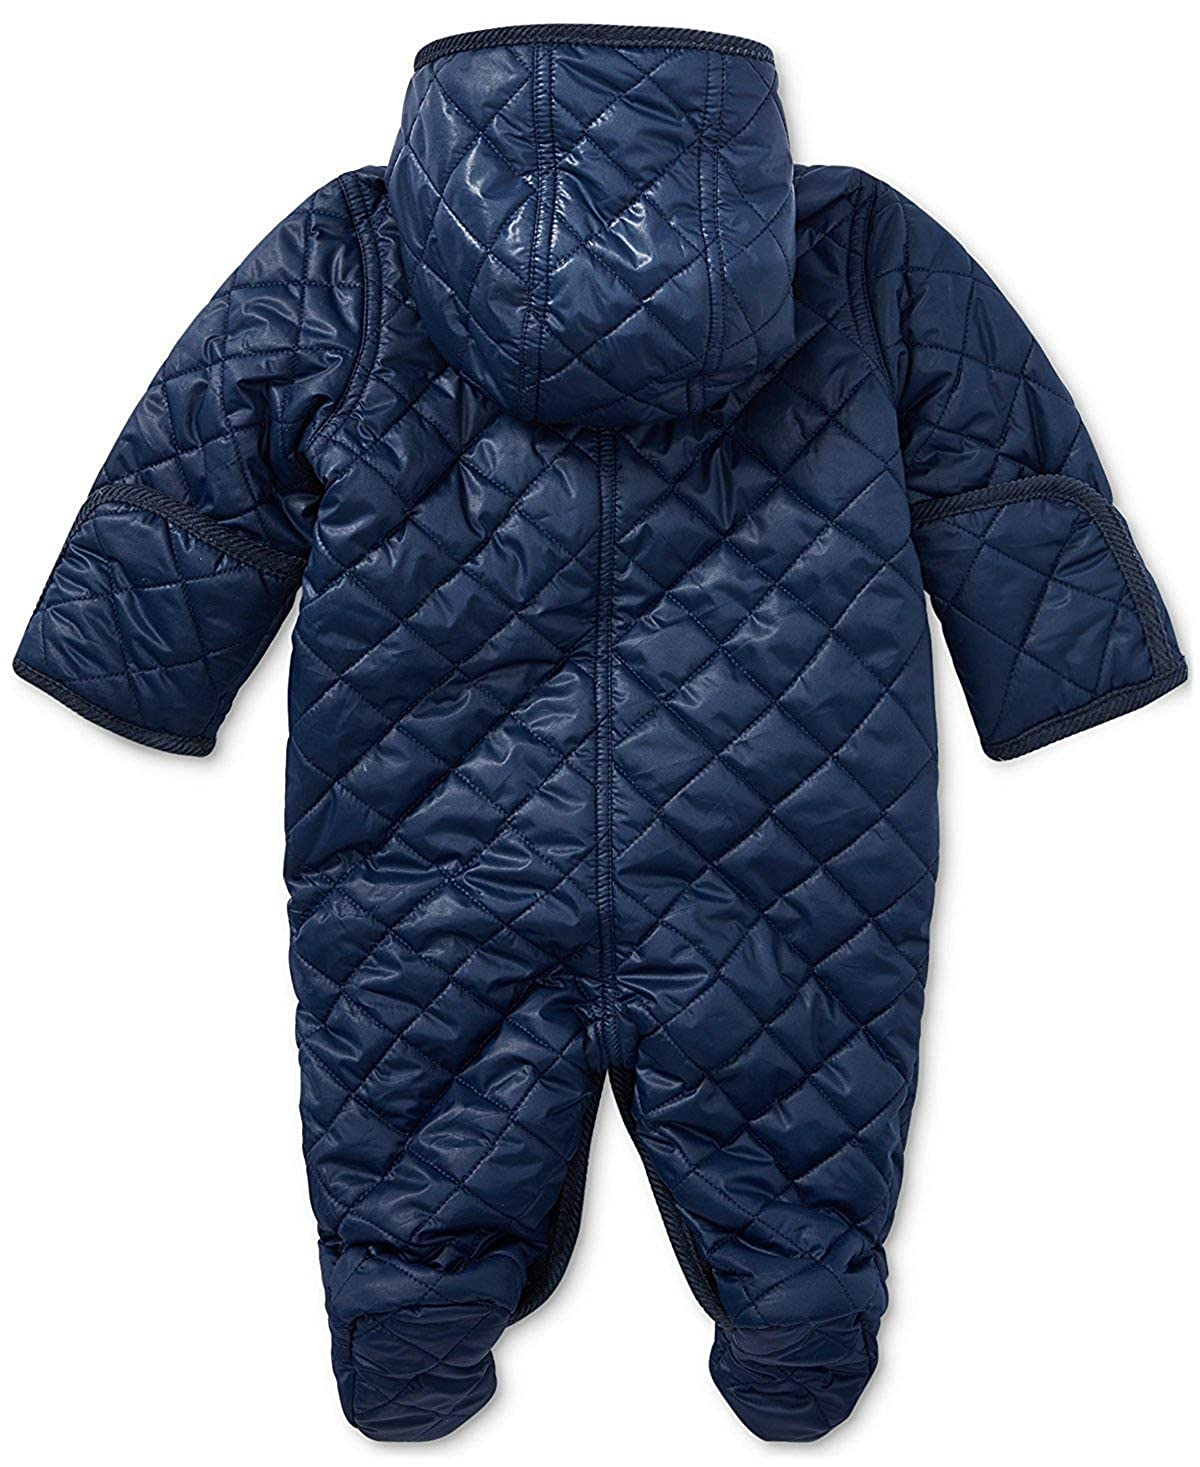 23c7a9fb6 Ralph Lauren Baby Boy Quilted Bunting 6 Months French Navy: Amazon.ca:  Clothing & Accessories